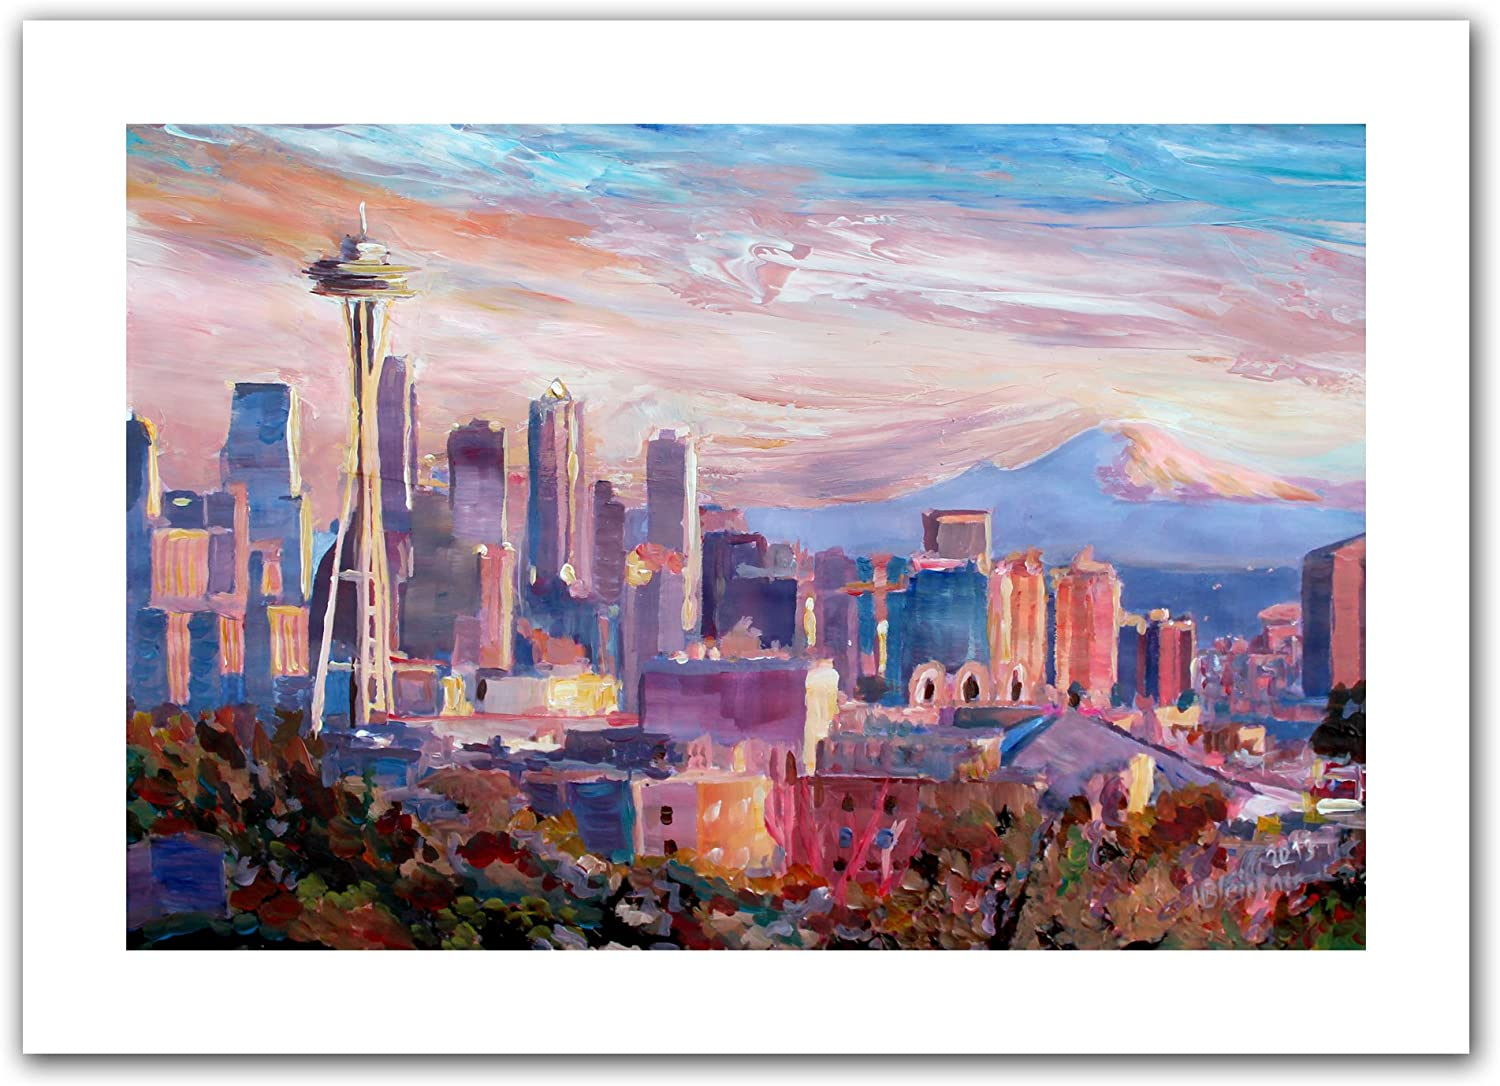 Art Wall Seattle Skyline With Space Needle Unwrapped Canvas Artwork By Markus Bleichner 16 By 22 Inch Oil Paintings Posters Prints